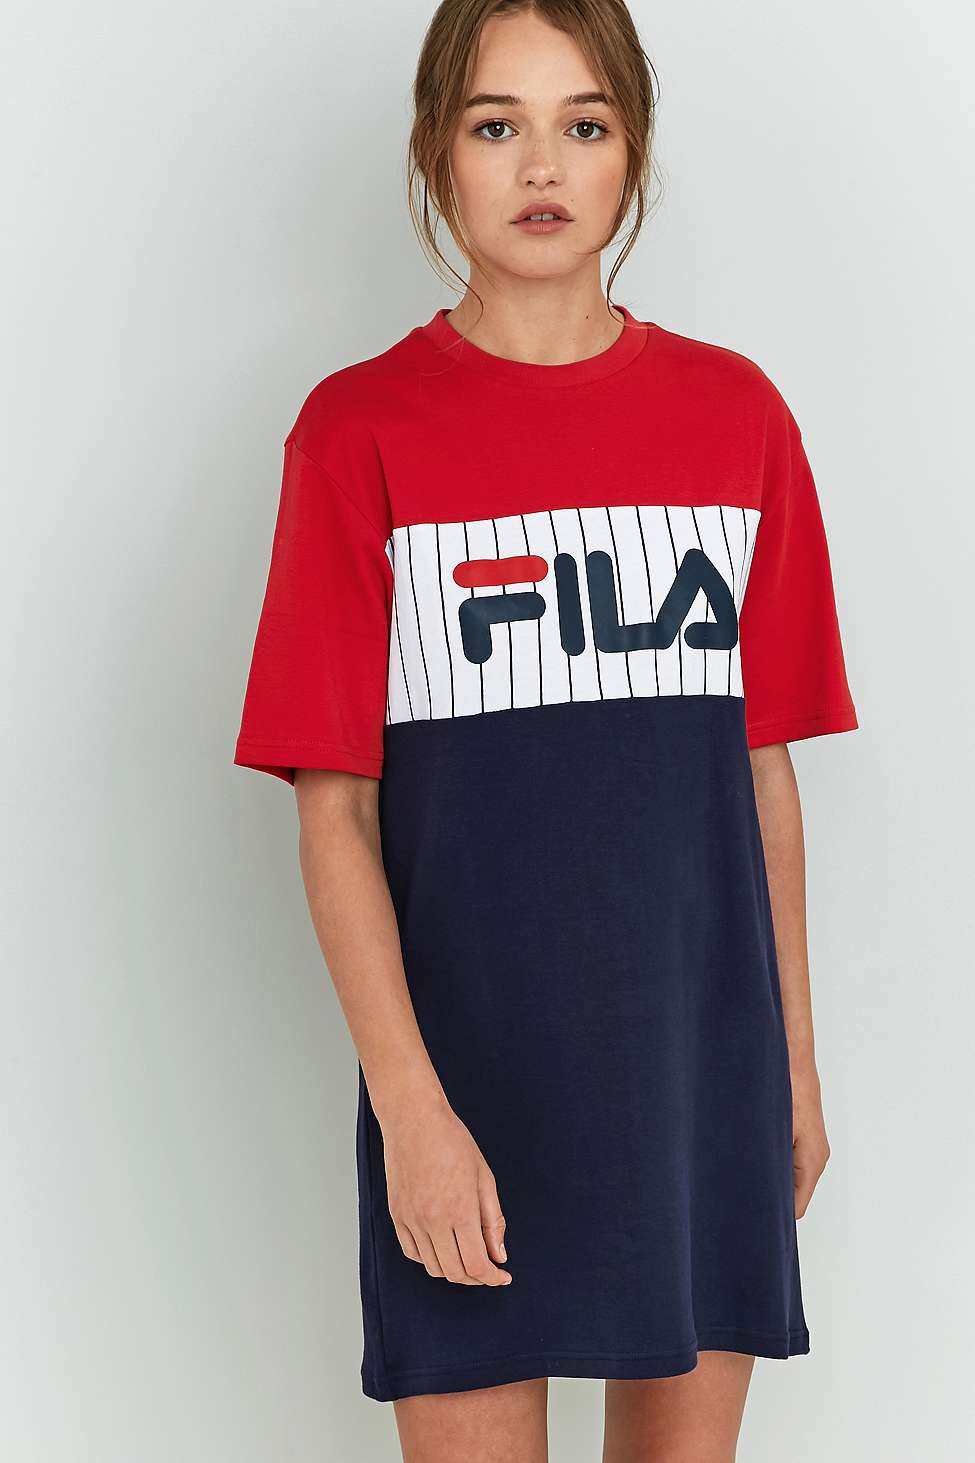 75d2e5f005 FILA Ruby T-Shirt Dress on ShopperBoard